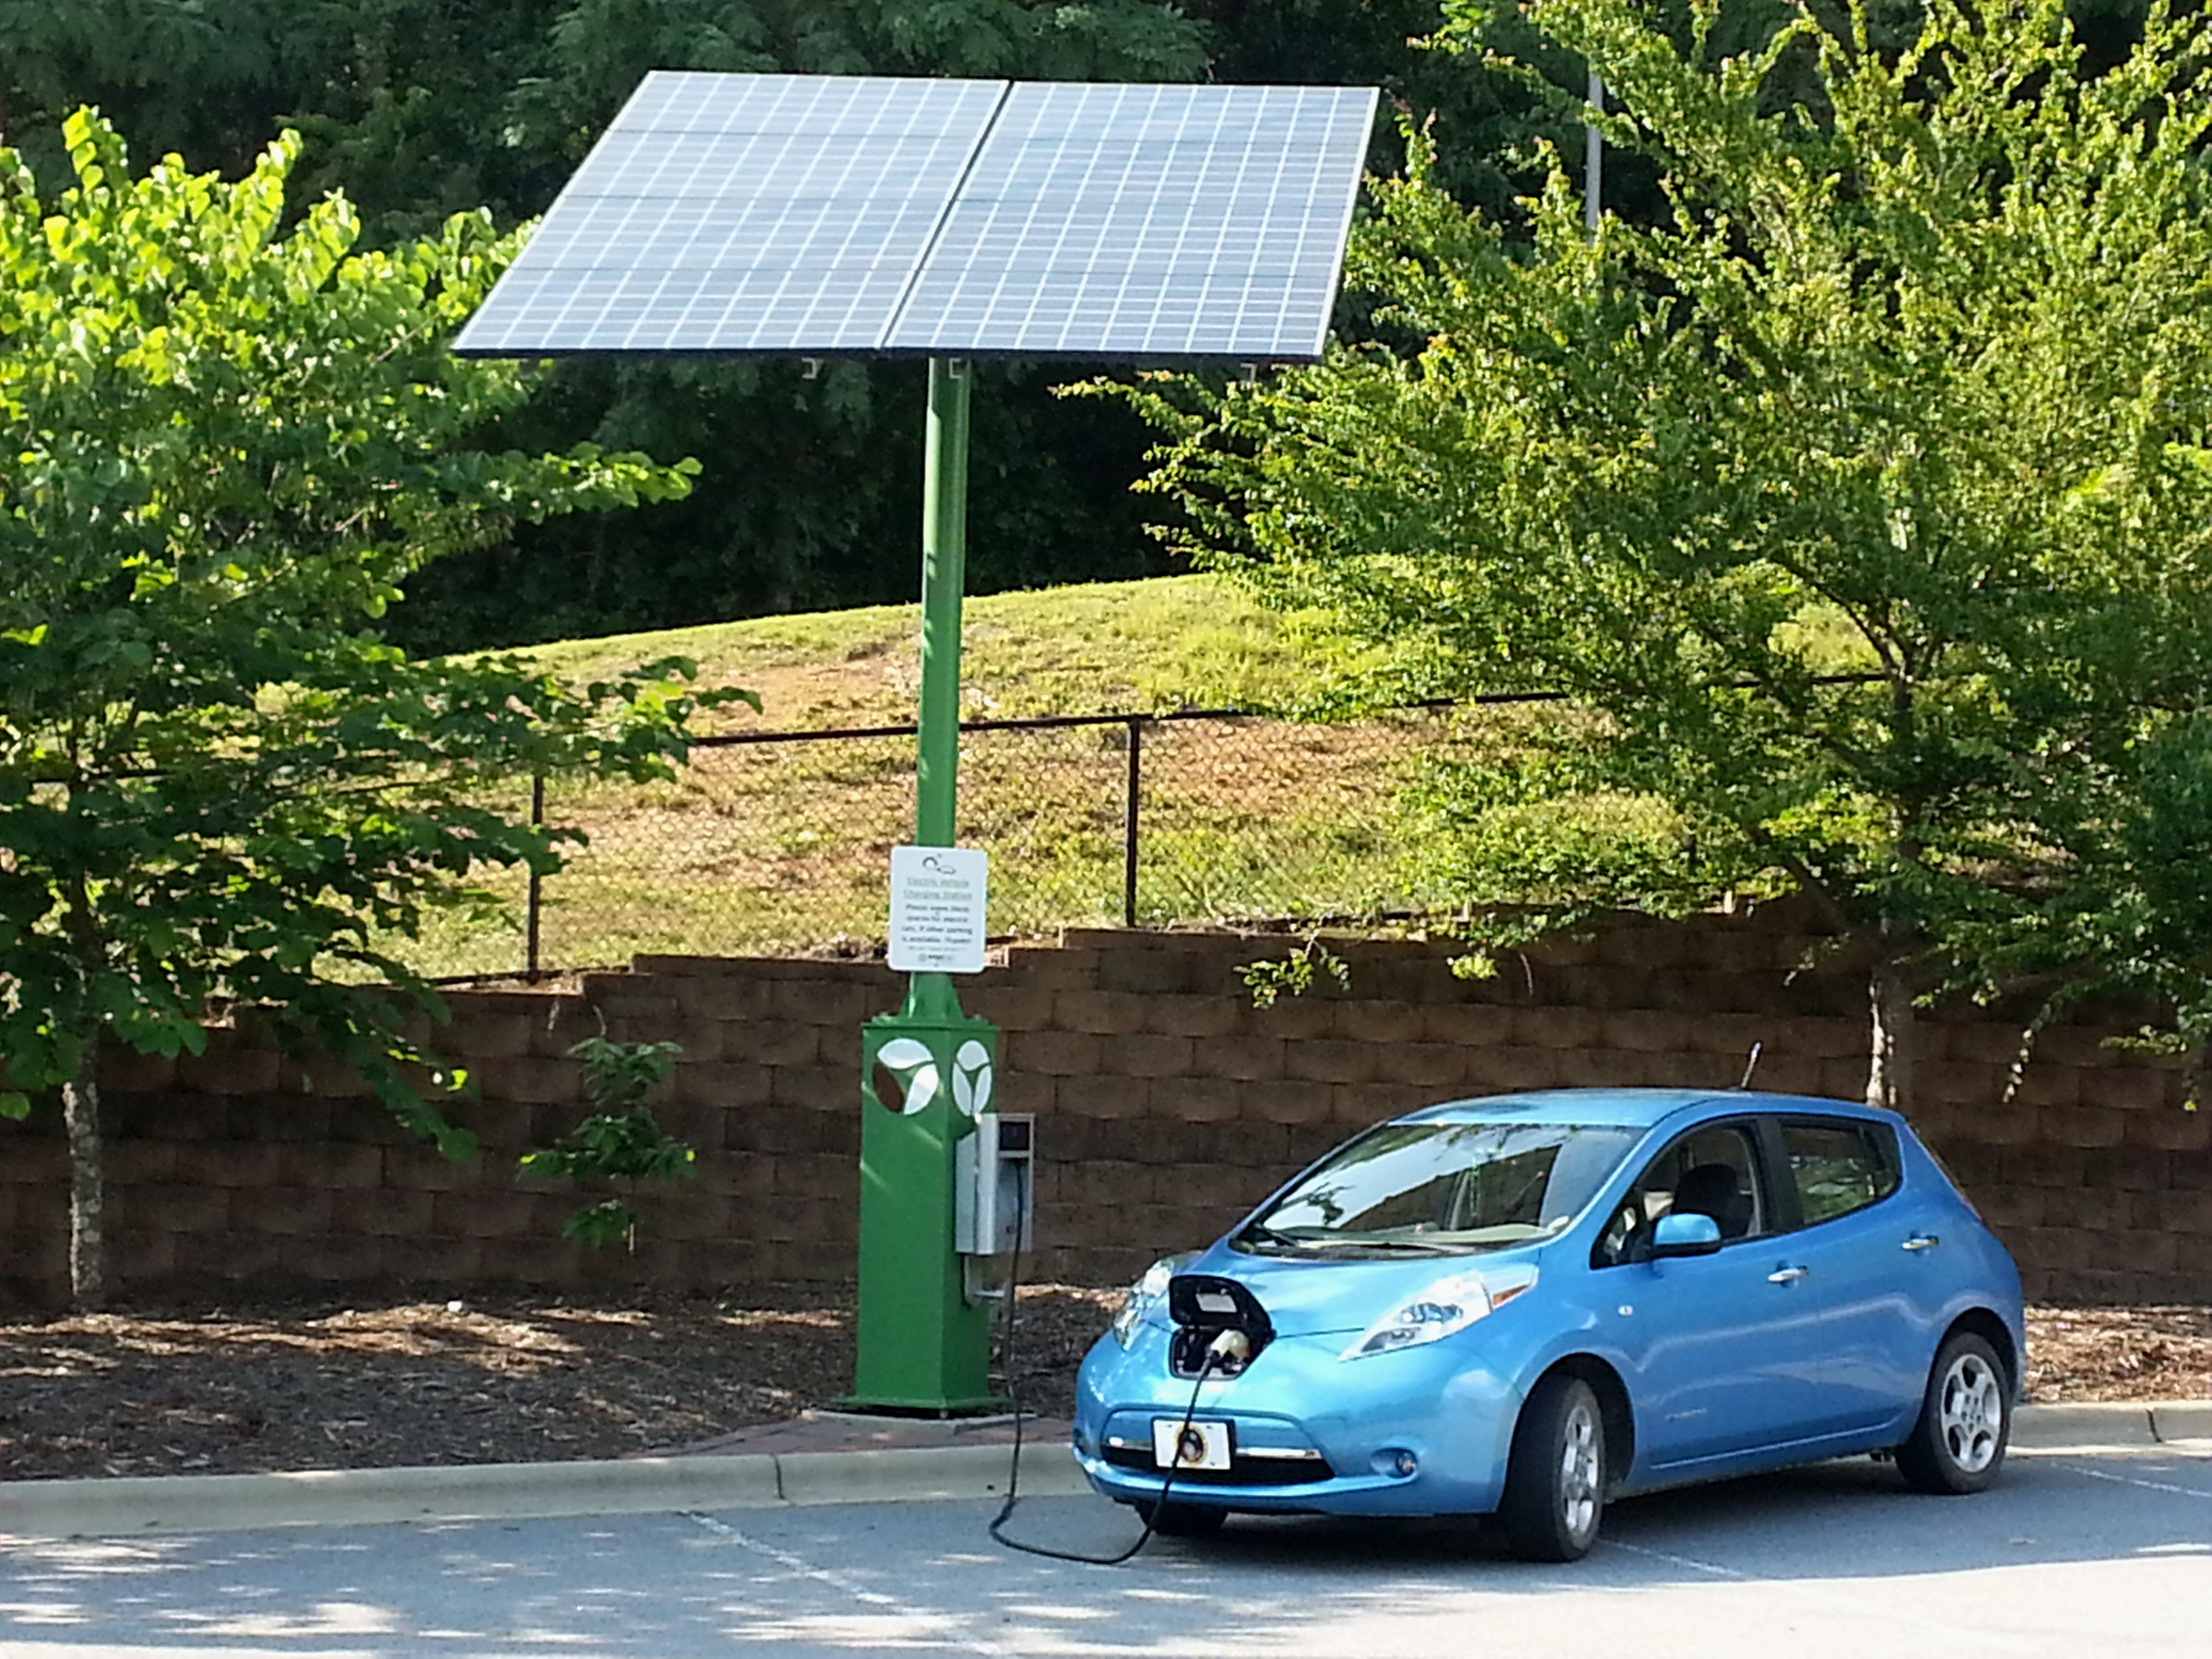 Nissan leaf report for july 2014 blue water leaf solarcharging714unca vanachro Choice Image